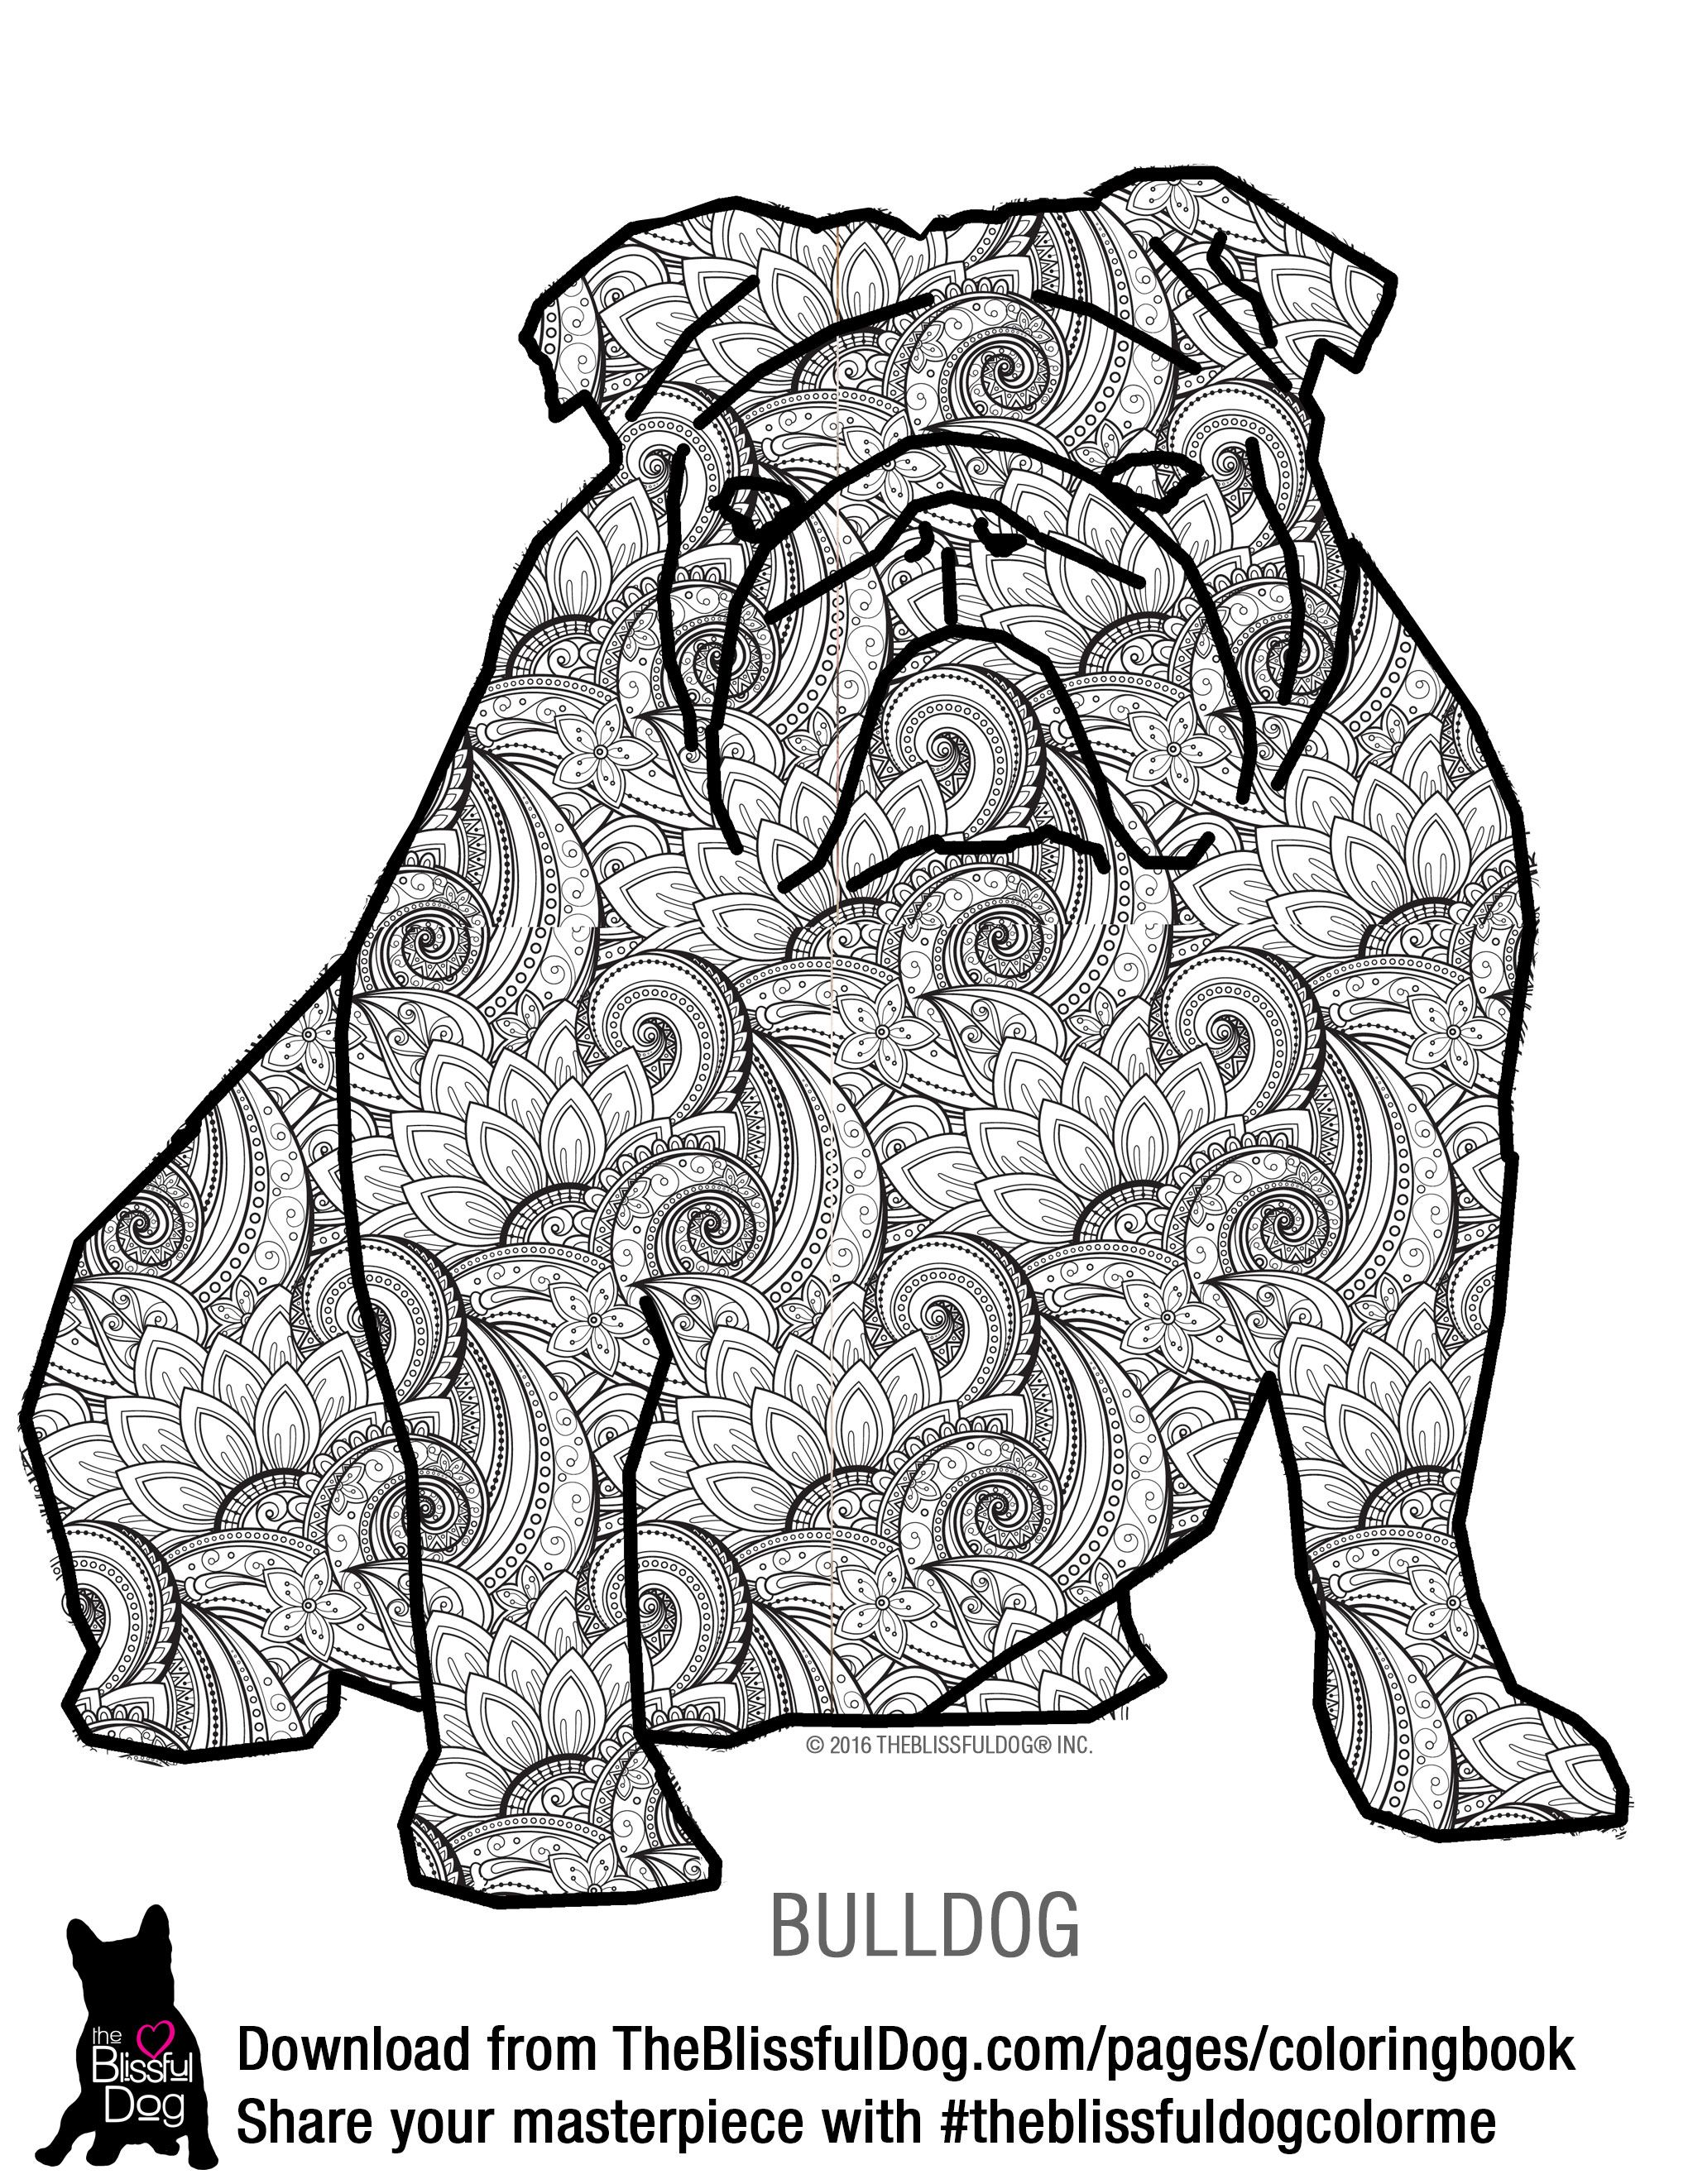 Bull Dog Coloring Page : coloring, Bulldog, Coloring, Pleasure!, Book,, Page,, Animal, Books